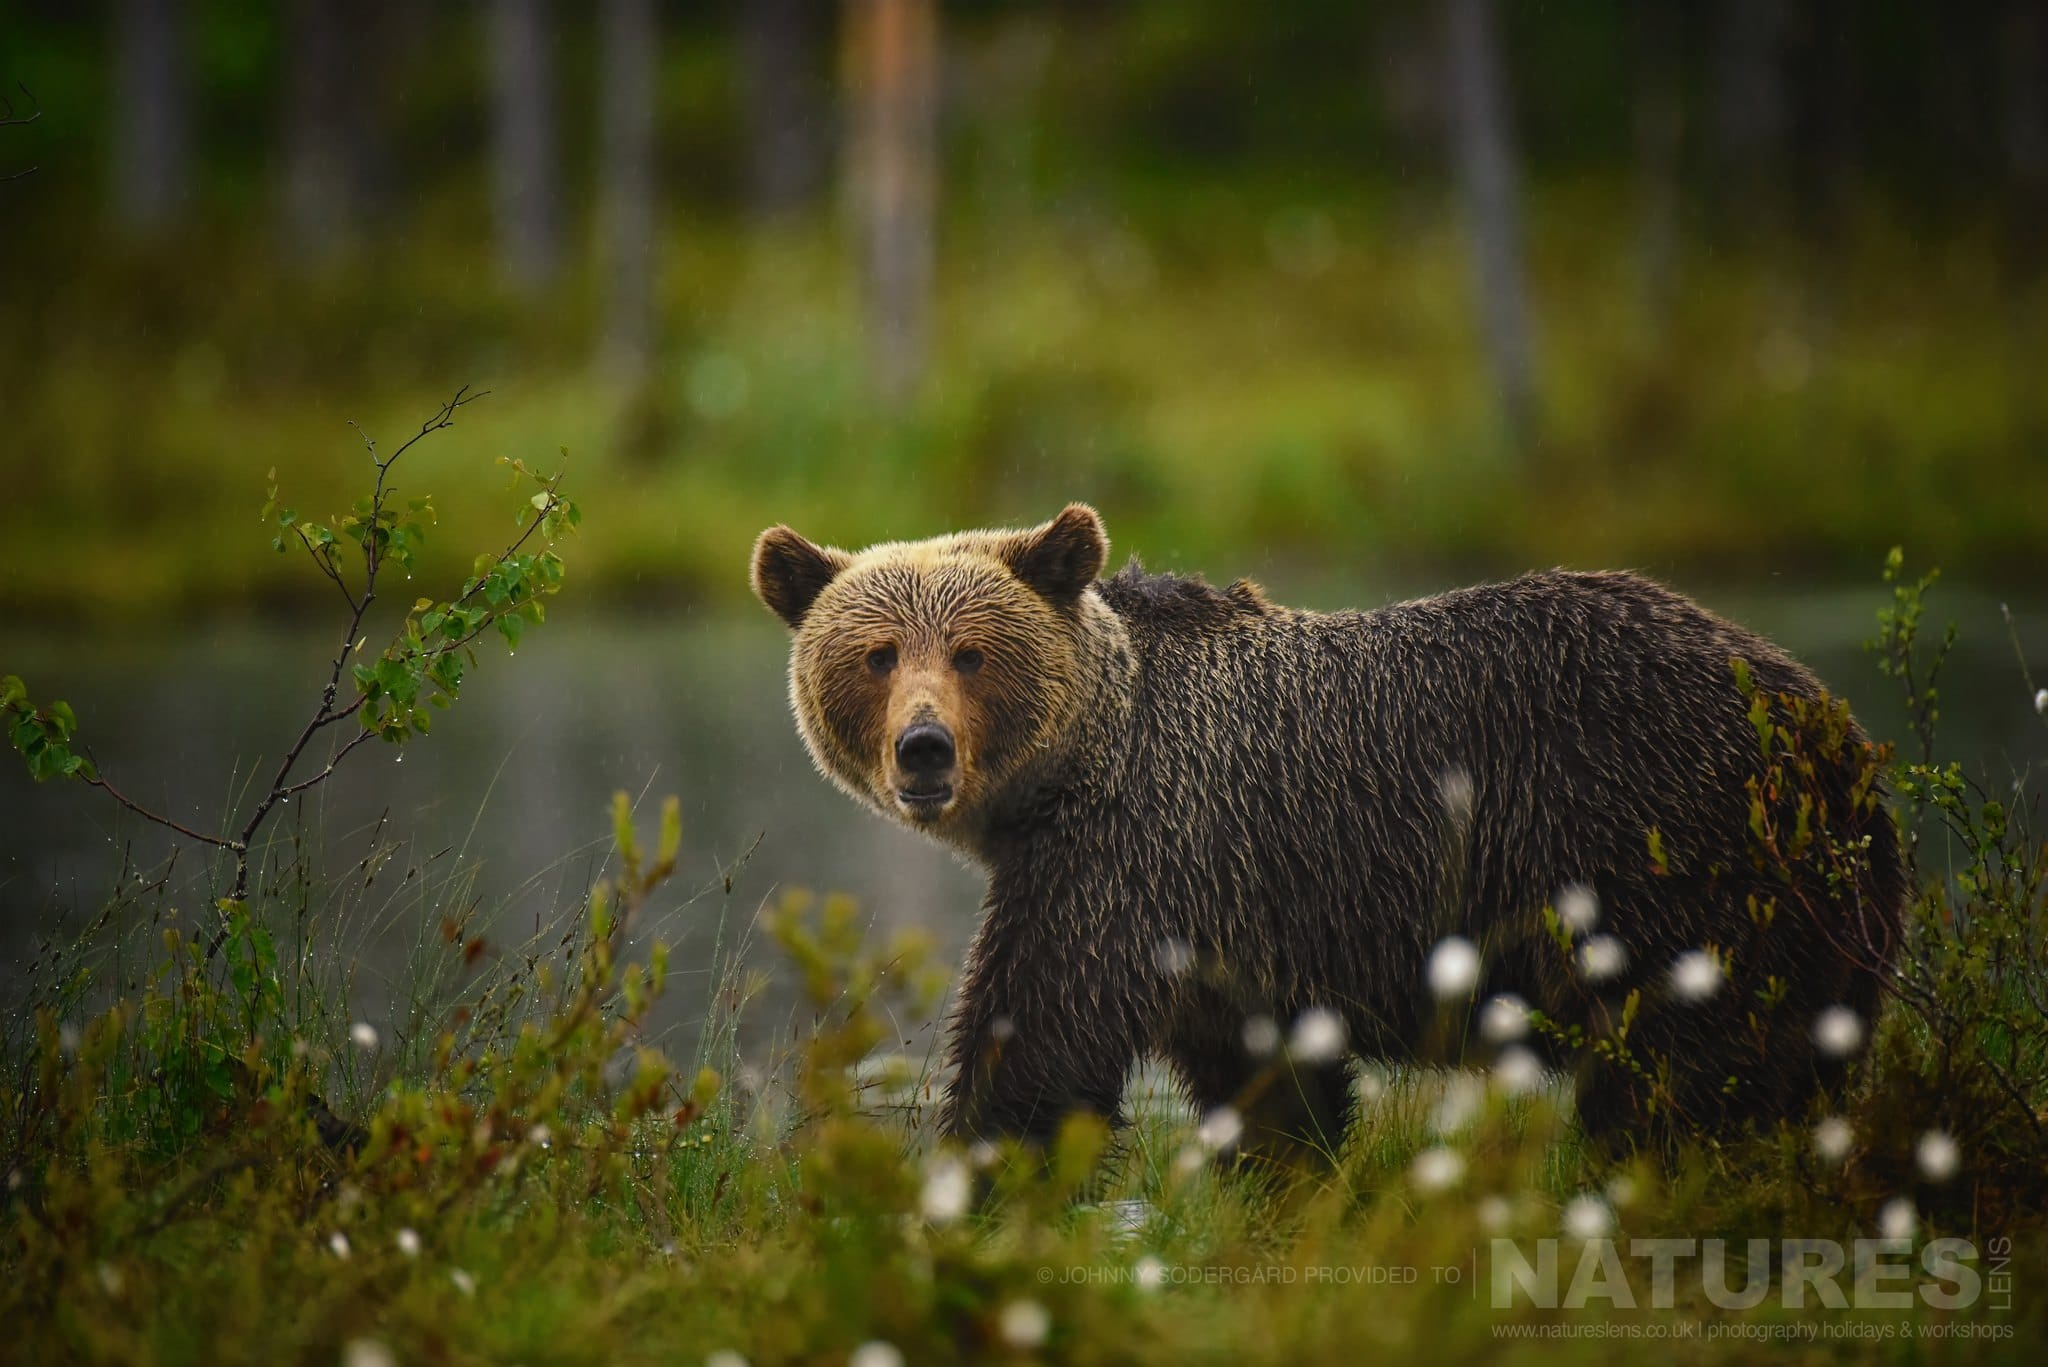 One Of The Large Wild Brown Bears Stares Directly At The Photography Hide   Photographed By Johnny Södergård During The NaturesLens Wild Brown Bears Of Finland Photography Holiday